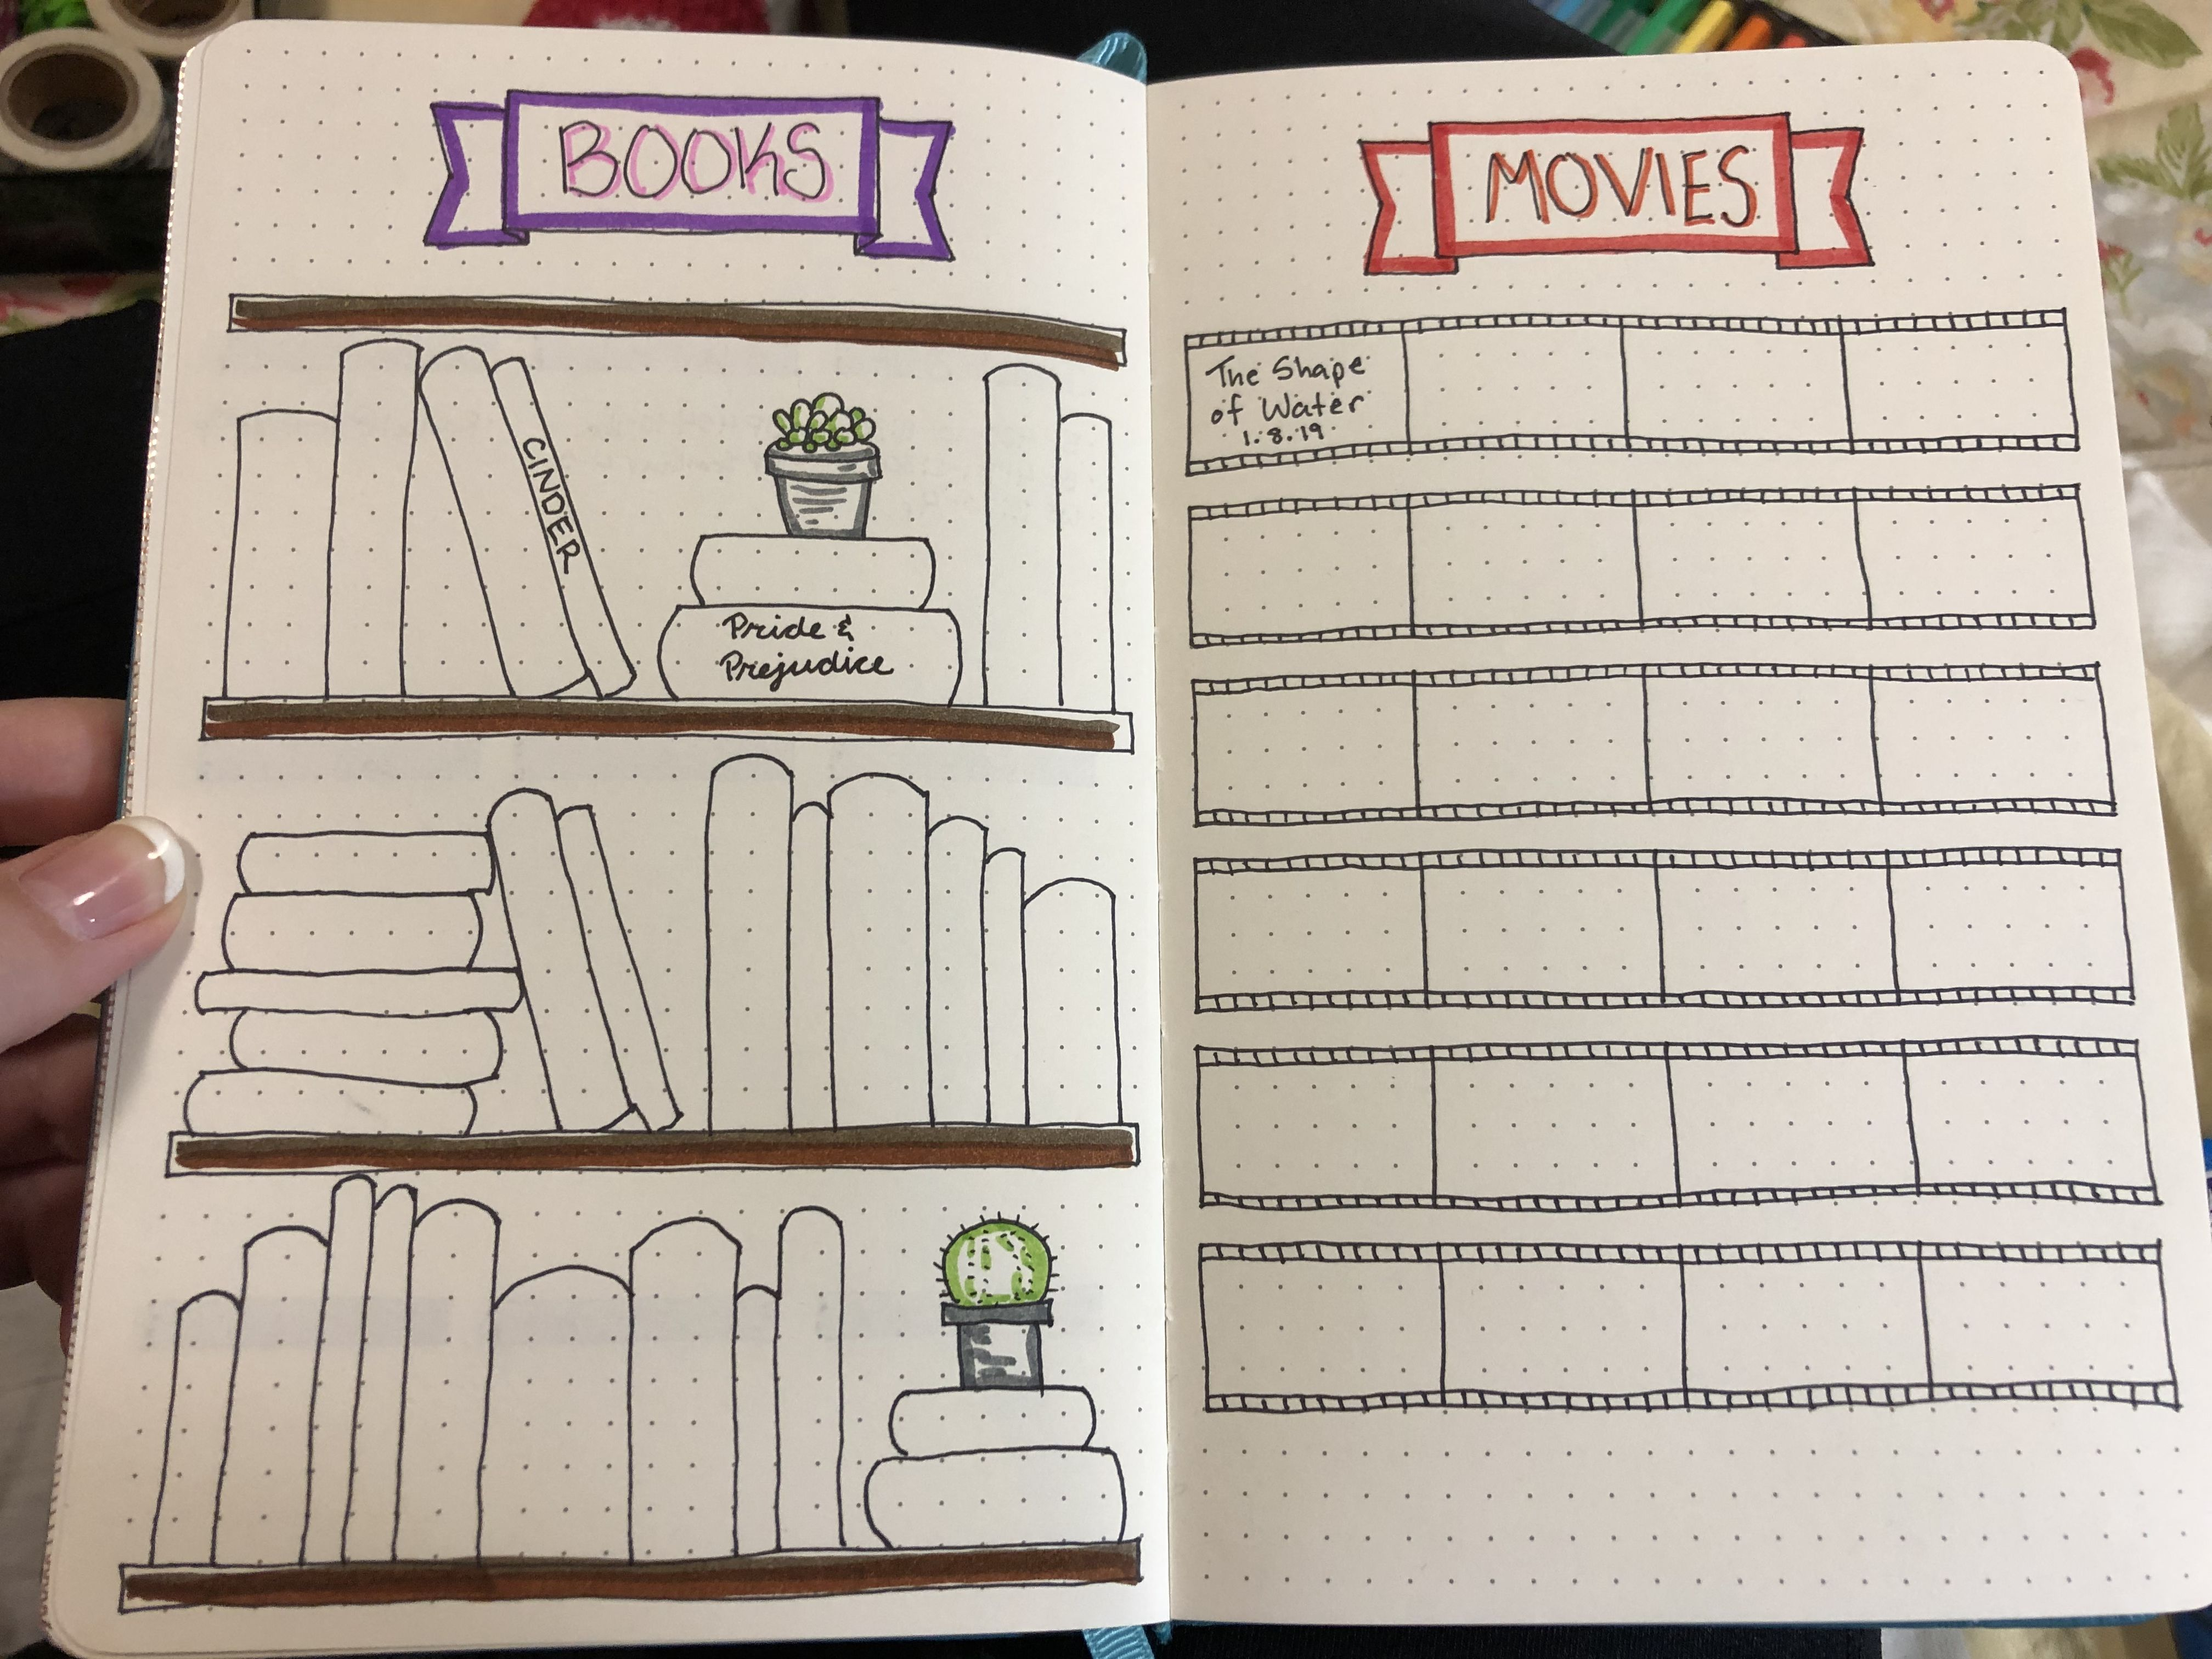 Book And Movie Tracker I Love The Design Came Up With By Combining Different Ideas From Pint Bullet Journal Inspiration Personalized Finding A Hobby